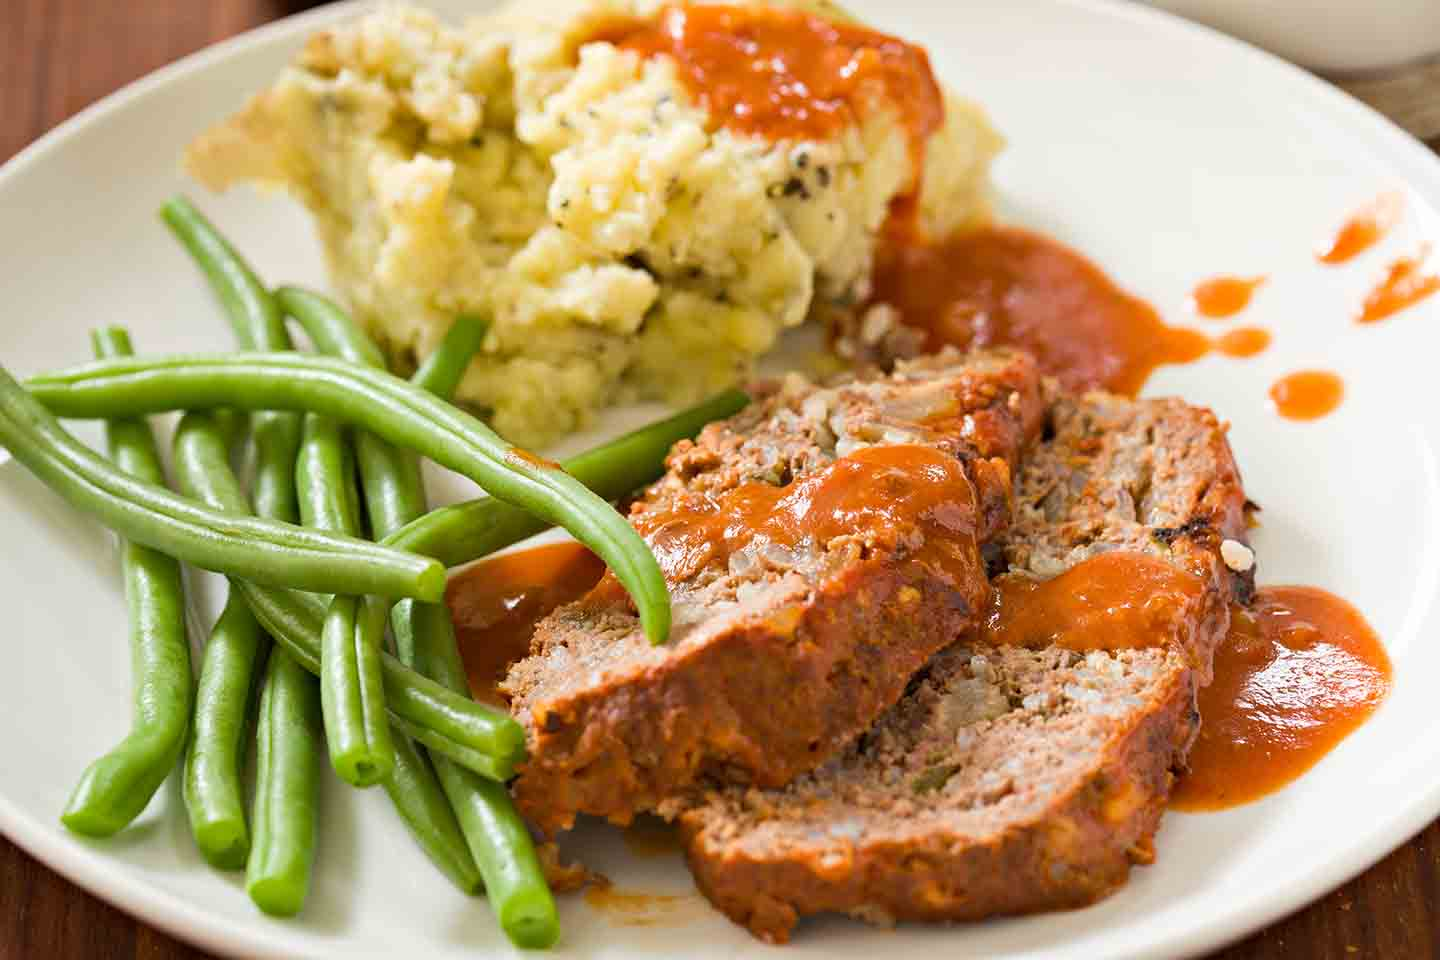 Meatloaf, mashed potatoes and green beans